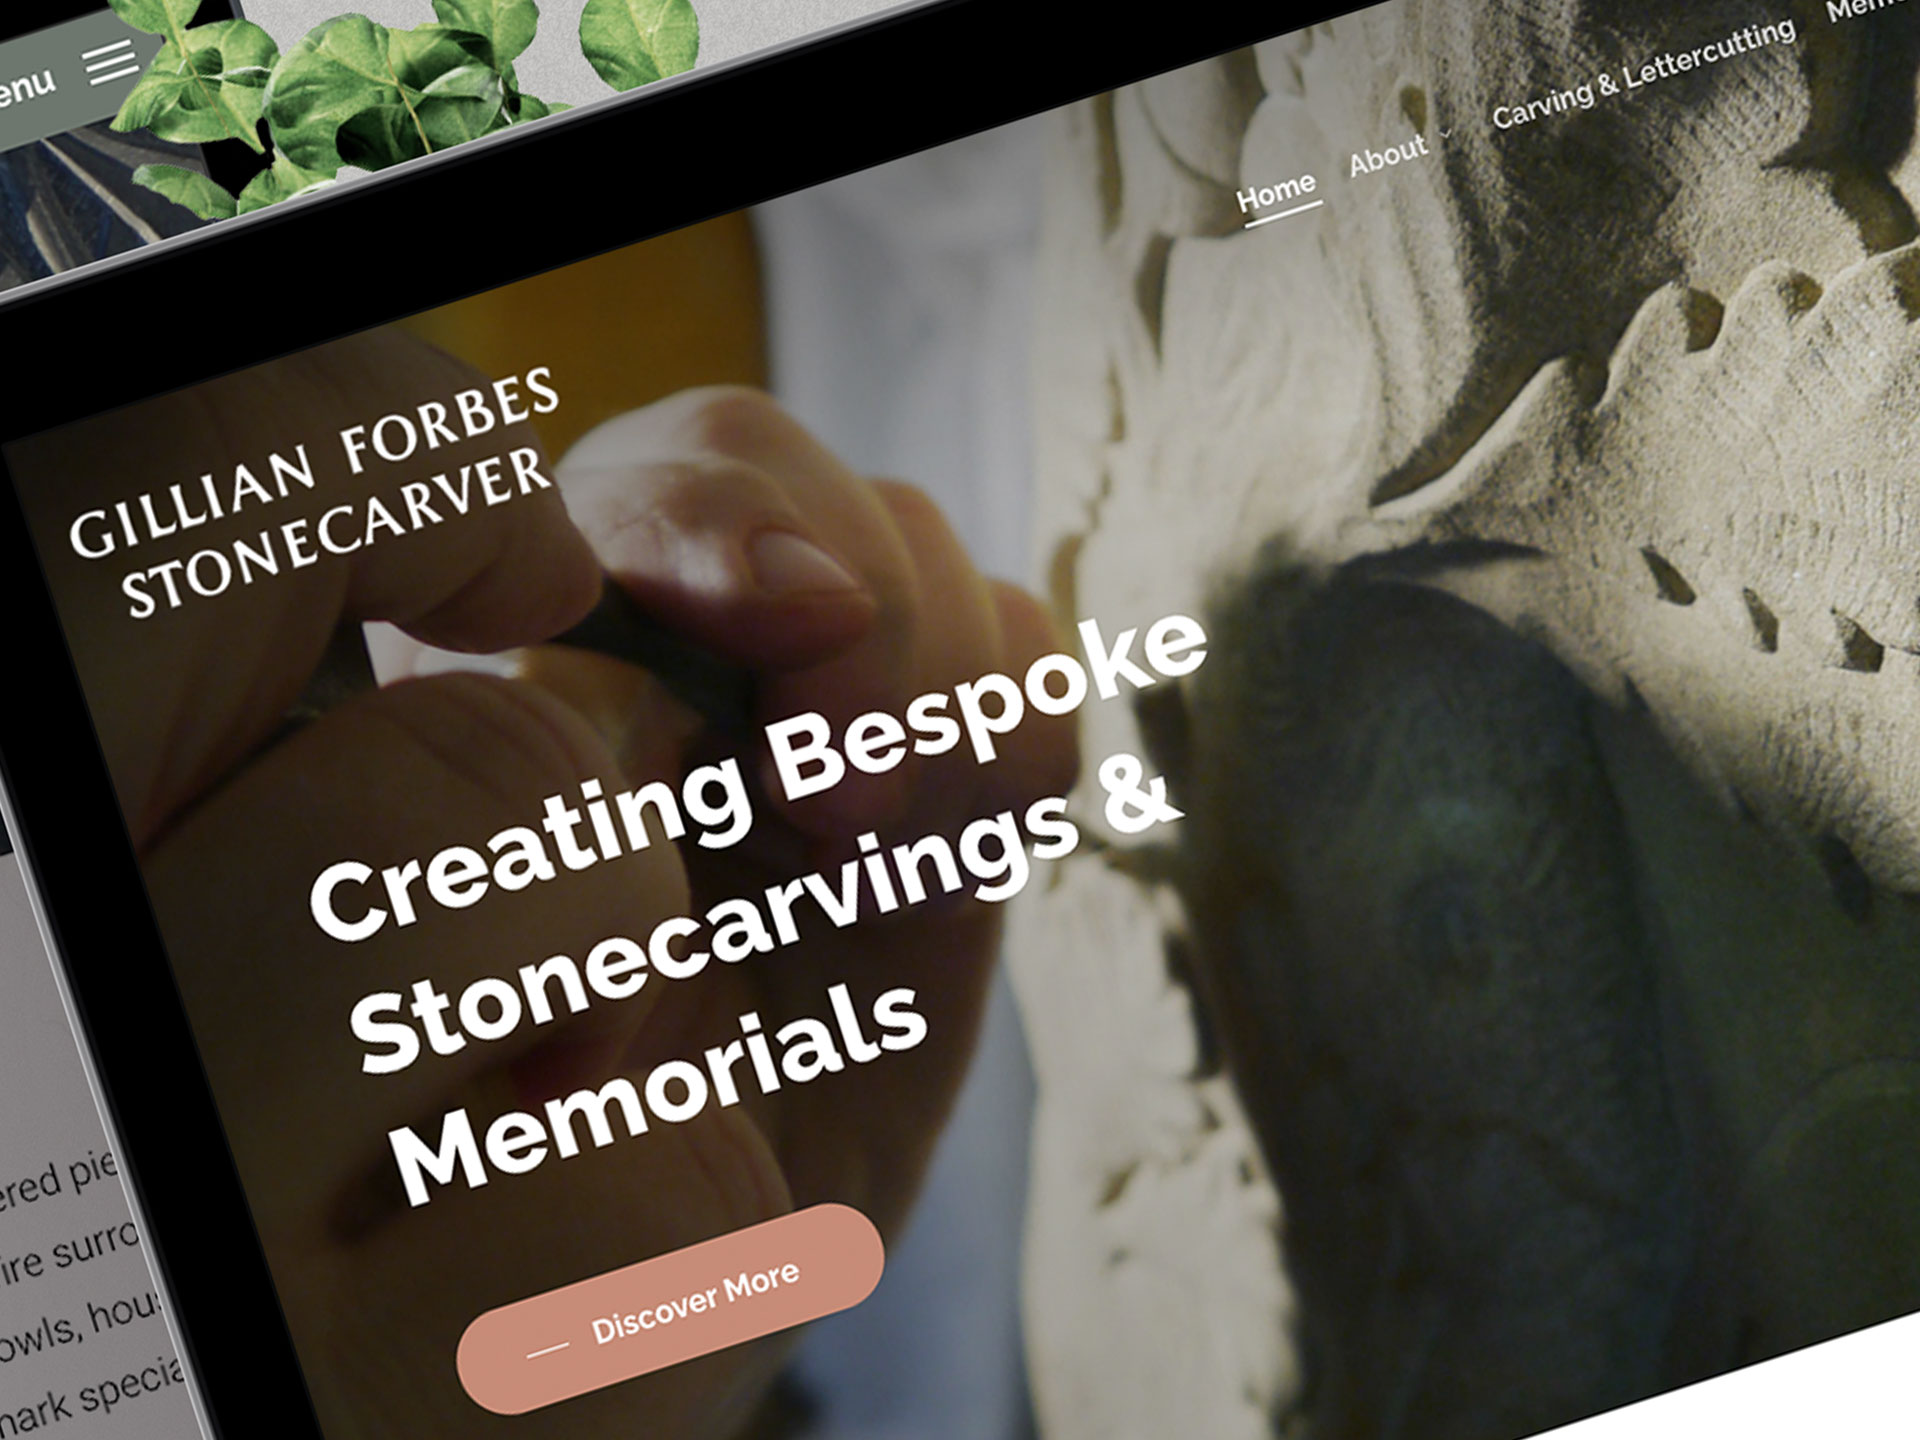 Gillian Forbes Stonecarver – Website Design